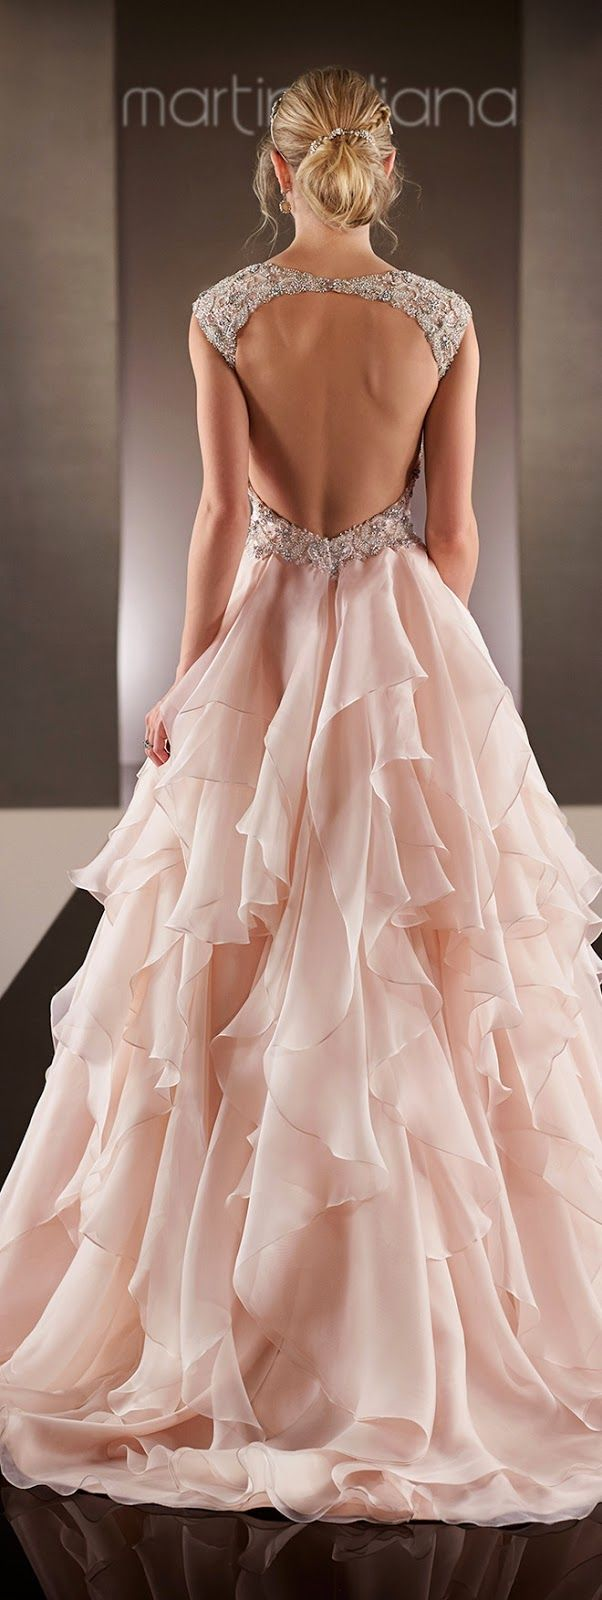 Best 25 blush wedding dresses ideas on pinterest blush wedding glamorous blush wedding ideas to inspire junglespirit Images